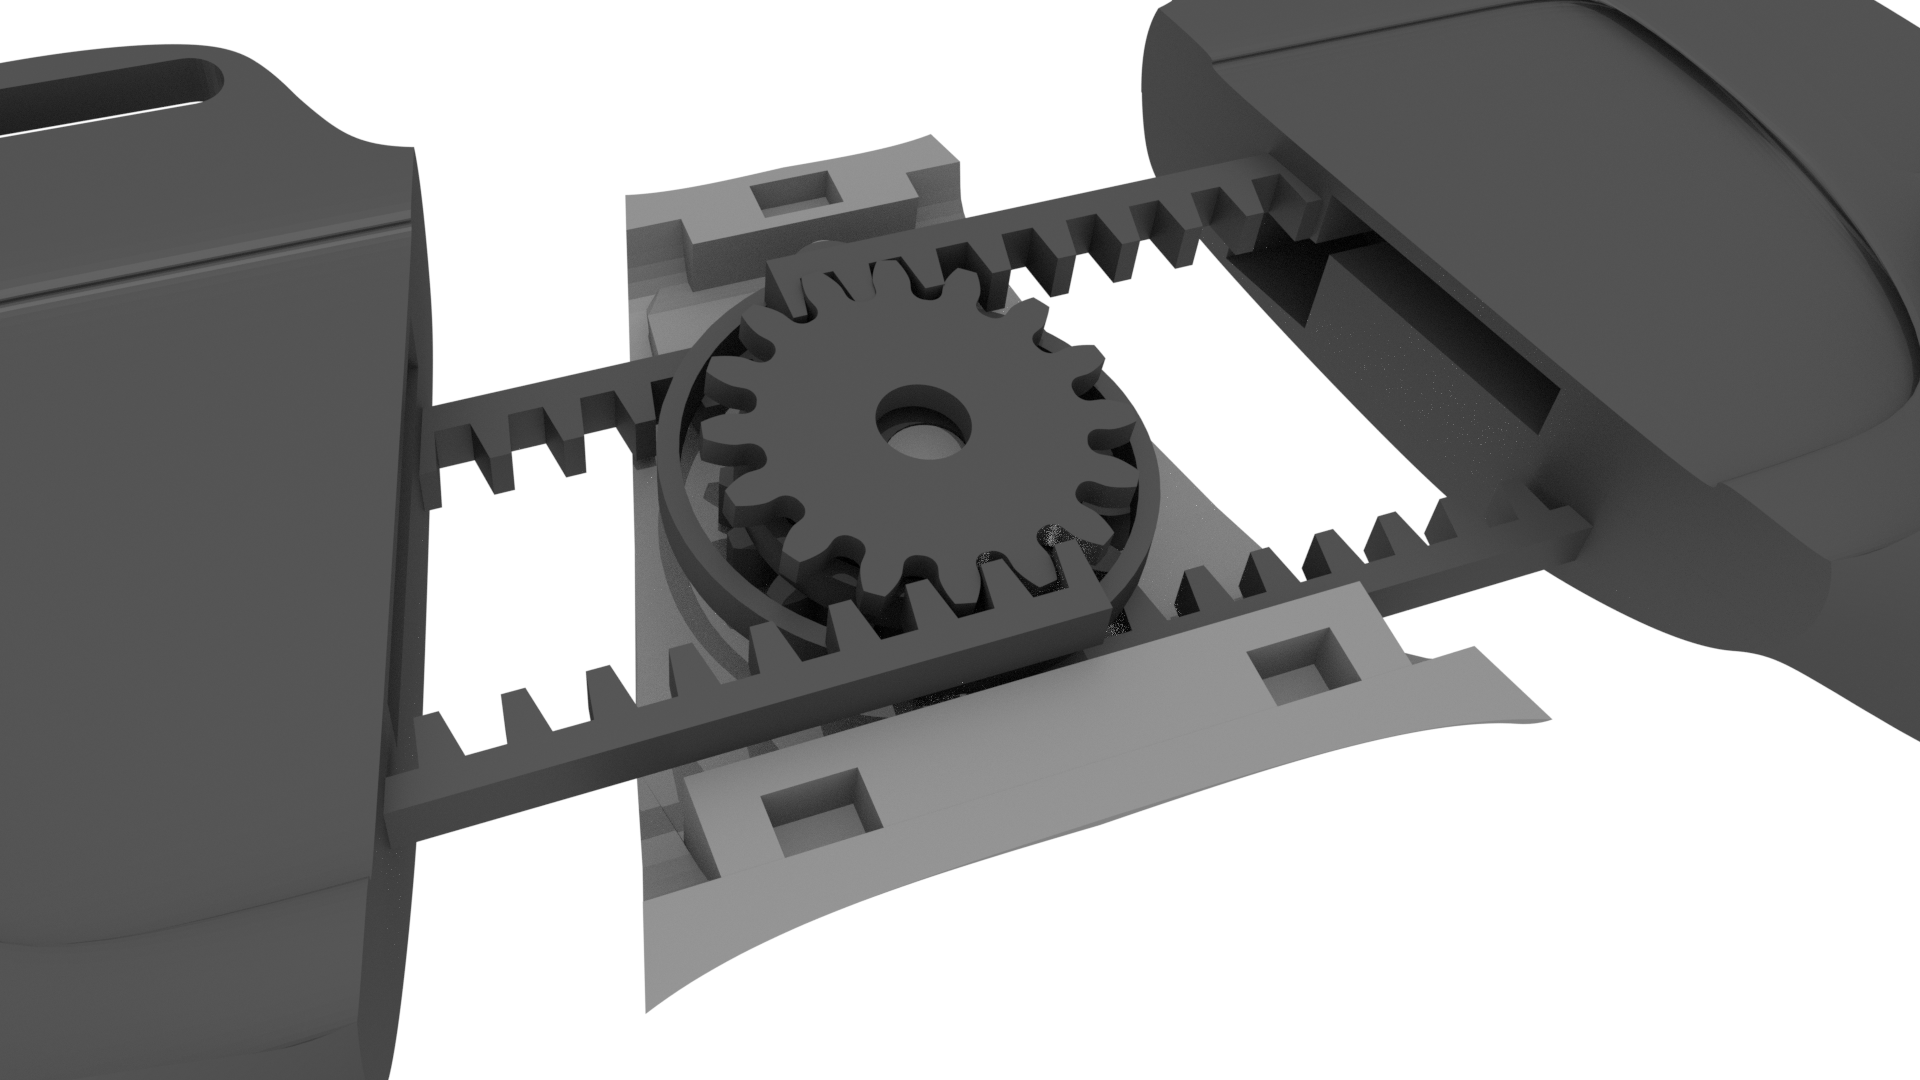 gear.png Download STL file Gaming Grip for Smartphones • 3D printing template, SOLIDMaker3D